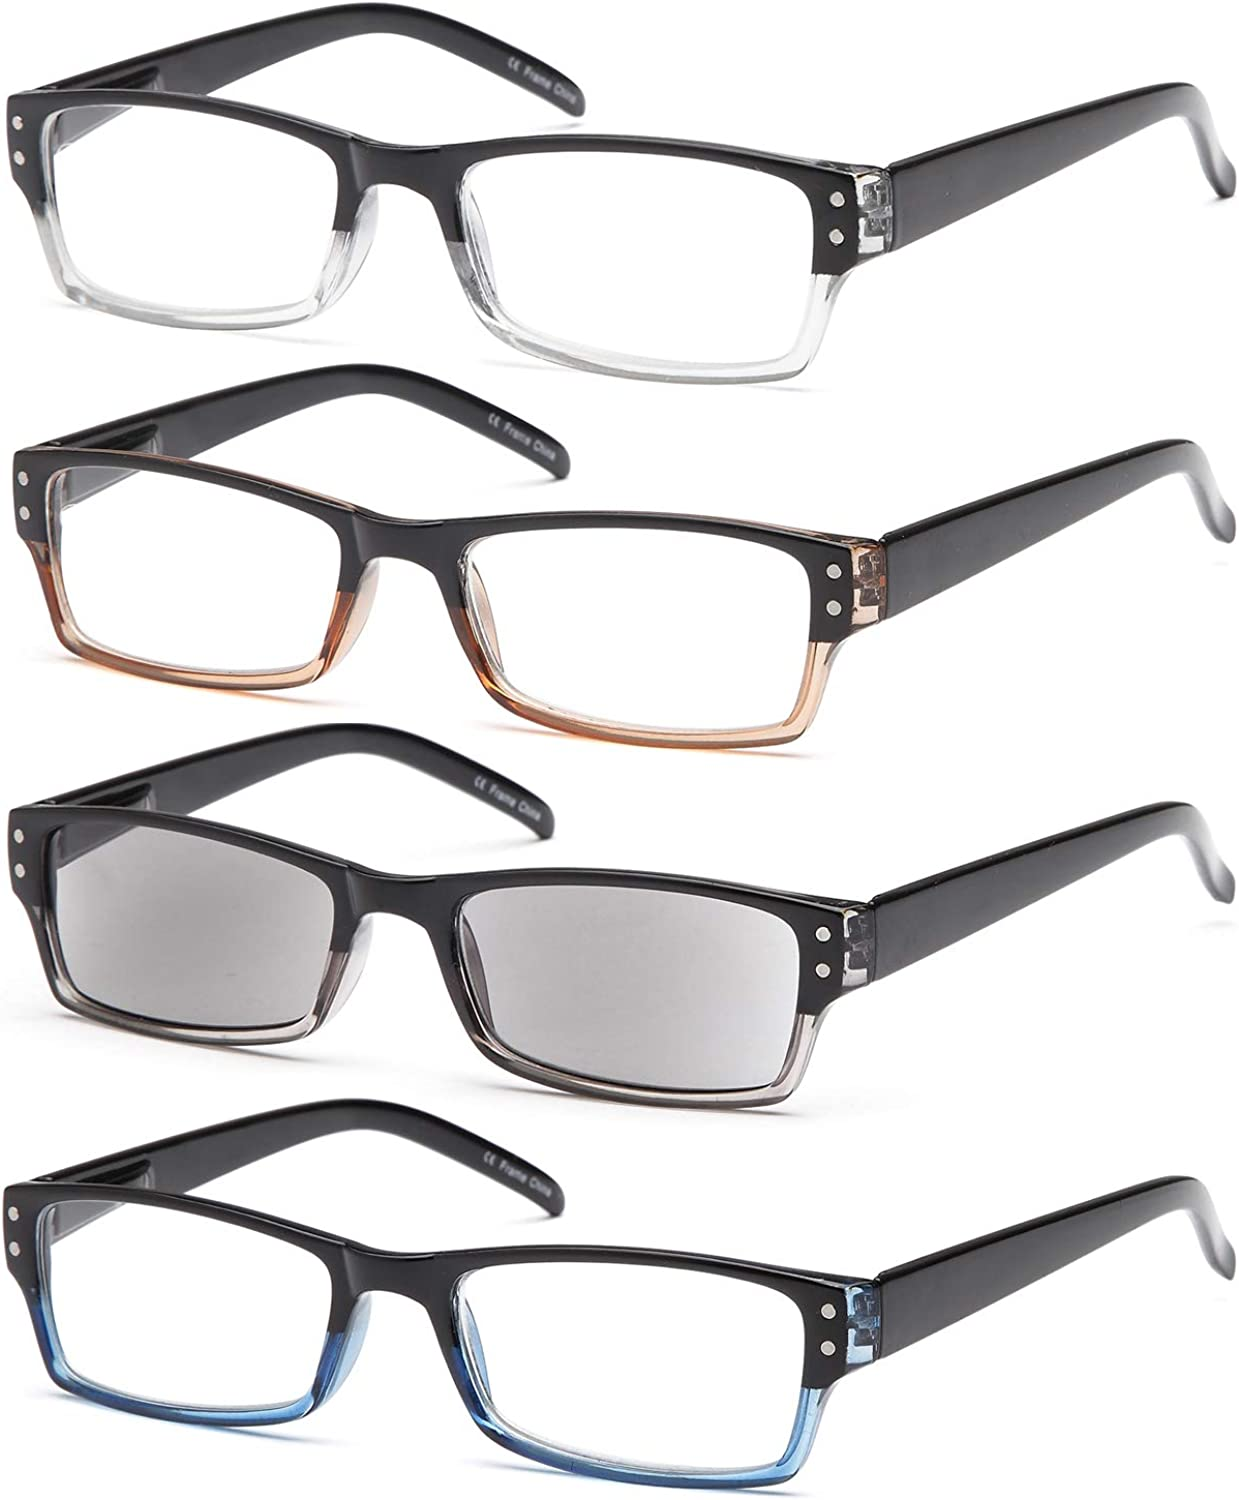 Gamma Ultra-Cheap Deals Ray Reading Glasses - 4 with Hinge Spring Re Pairs Popular product Readers